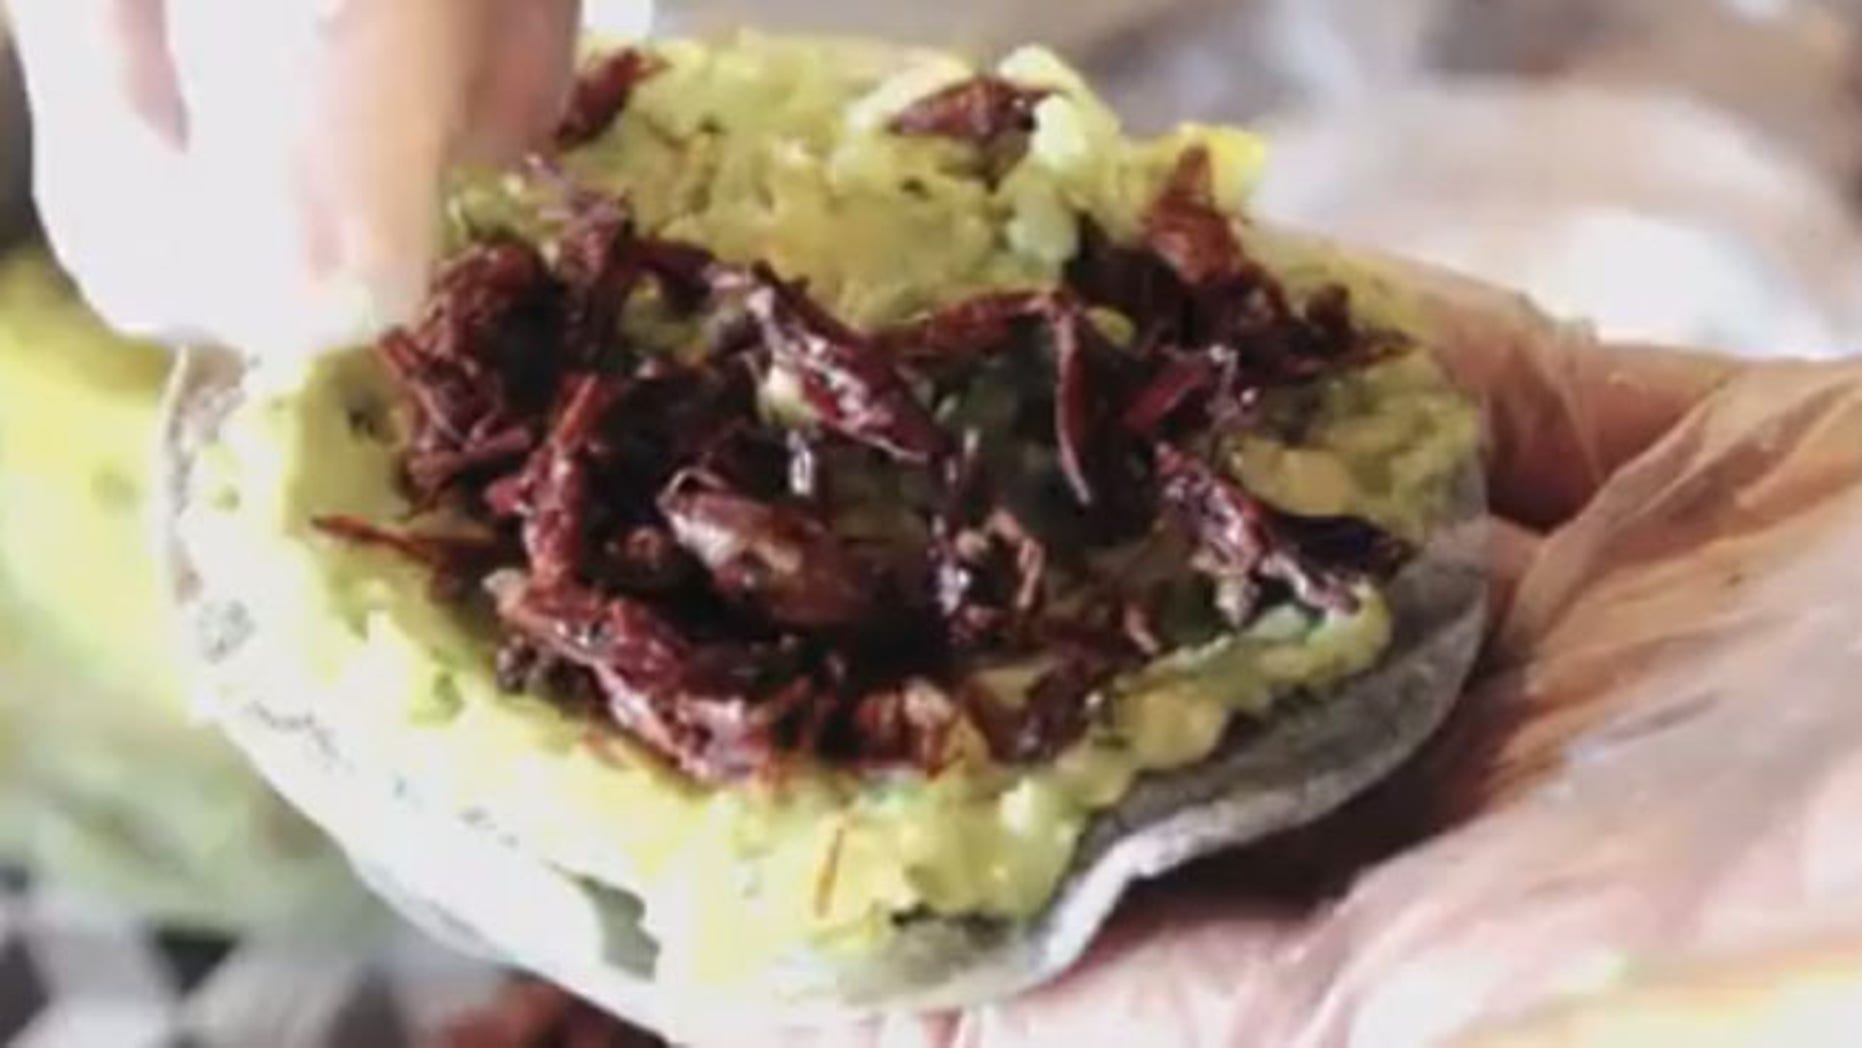 New York's Antojeria la Popular started serving a tacos and burgers made with crickets-that are surprisingly pretty popular.